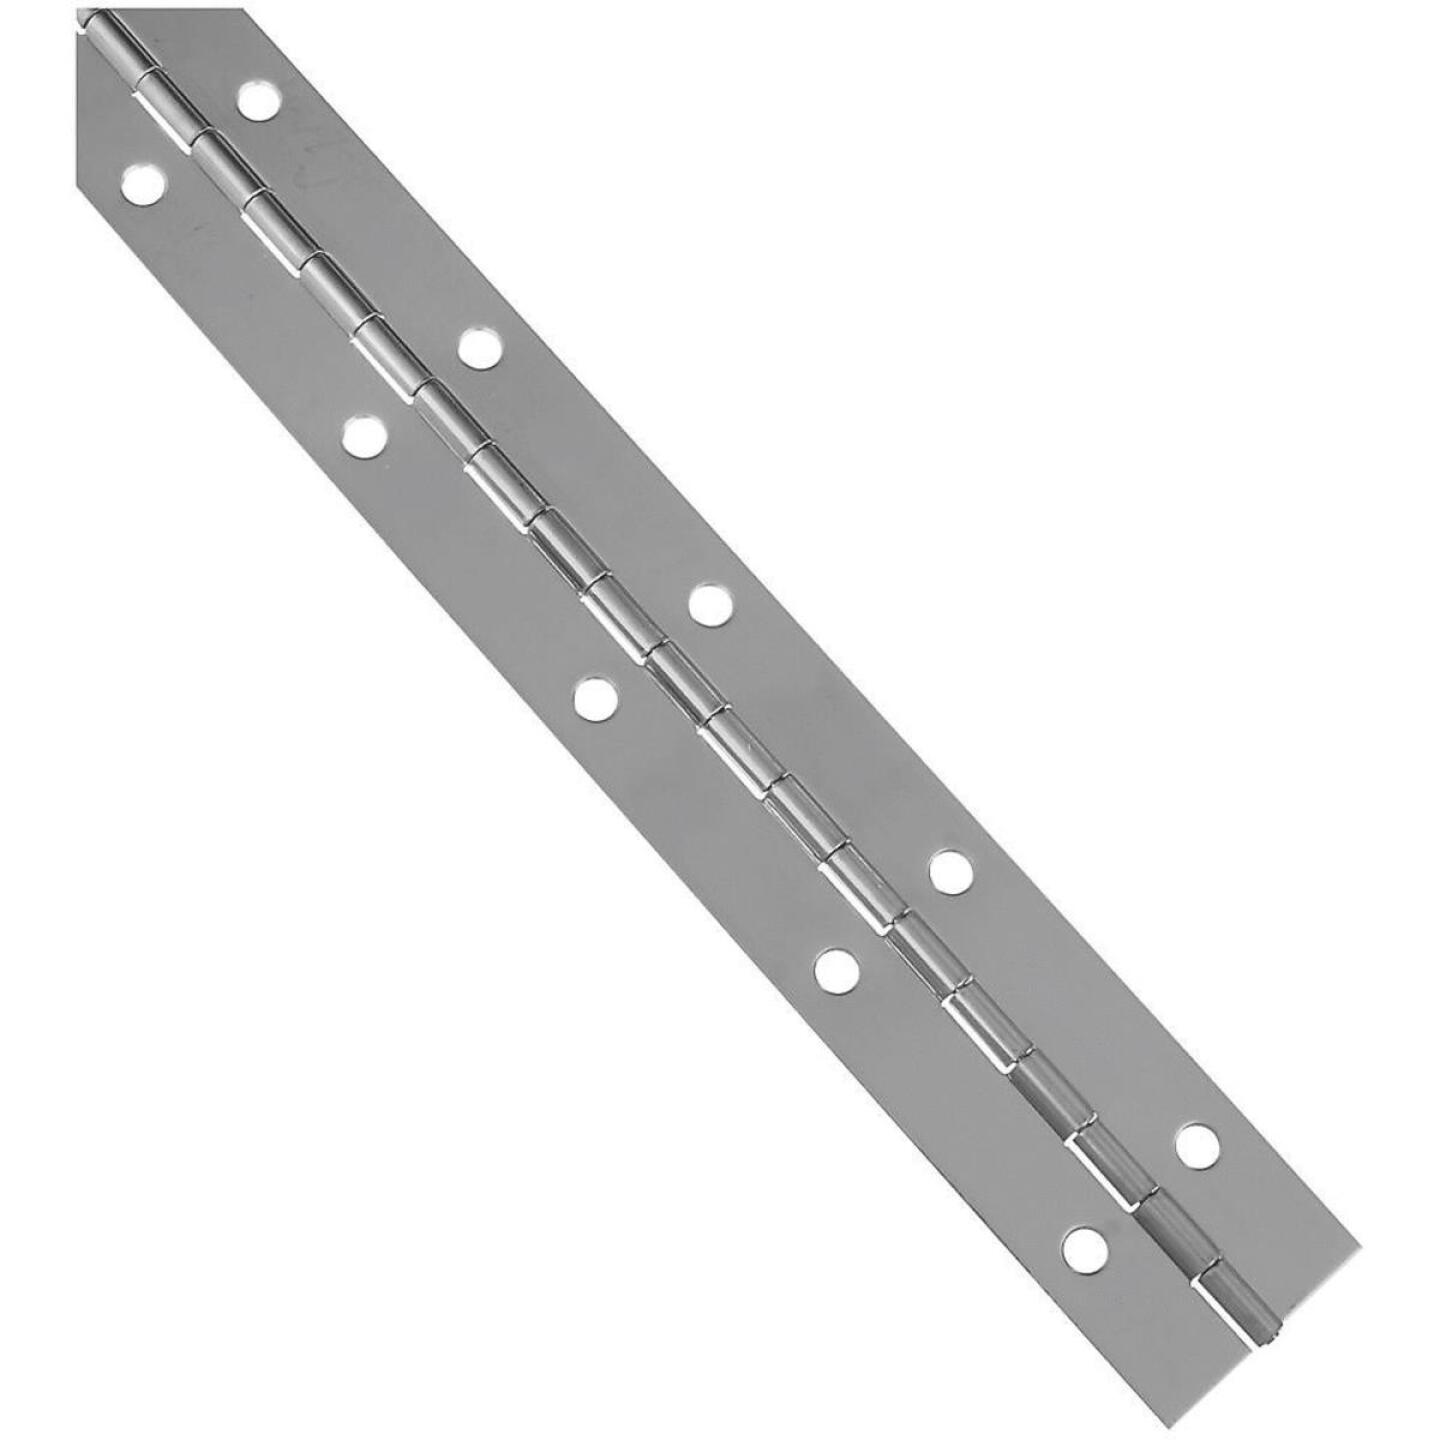 National 1-1/2 In. x 12 In. Stainless Steel Continuous Hinge Image 1